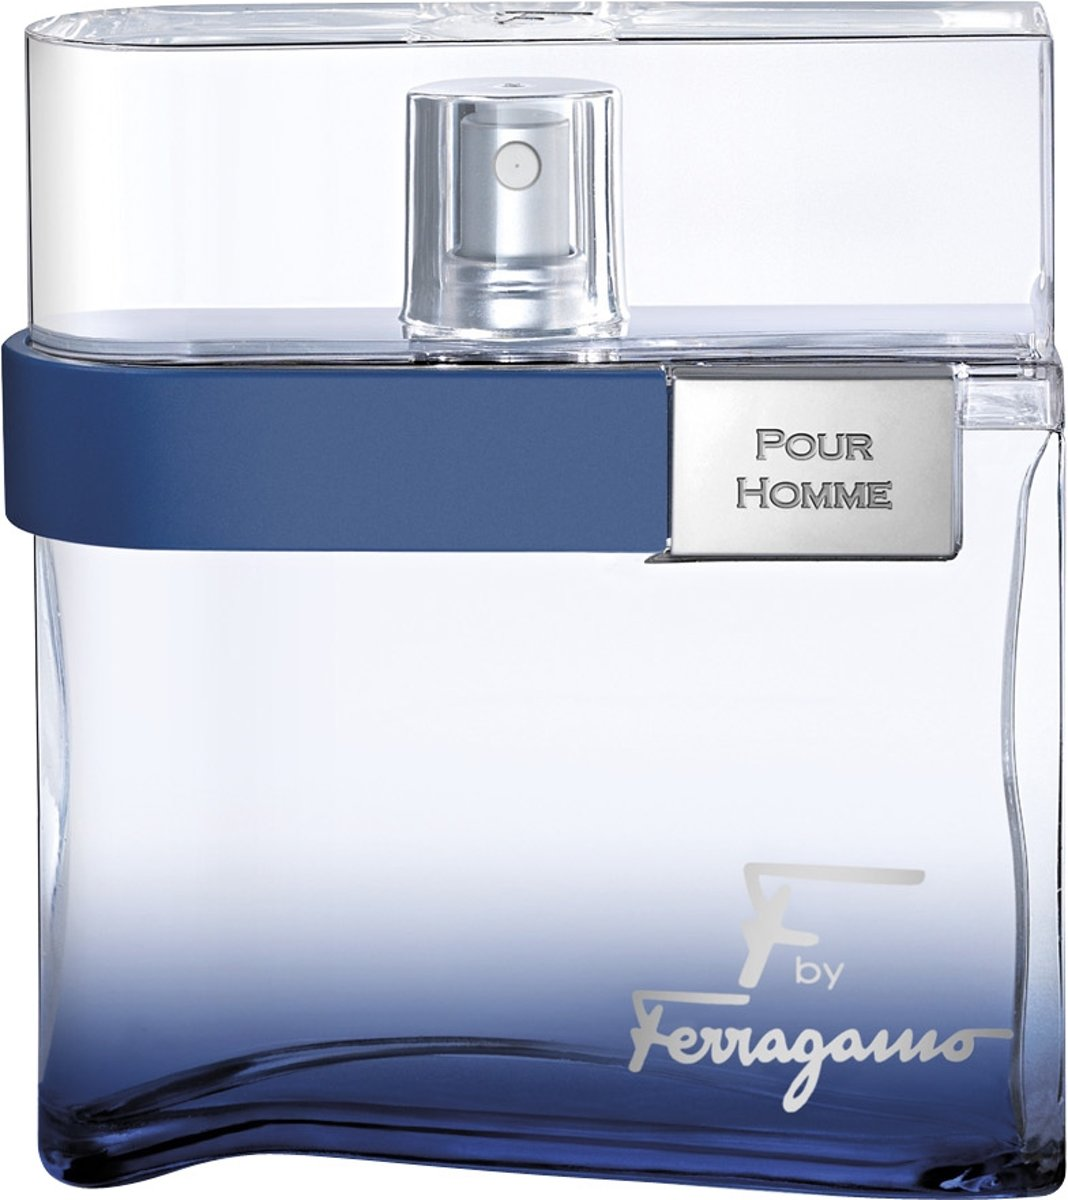 Salvatore Ferragamo F Free Time 100 ml Mannen 100ml eau de toilette